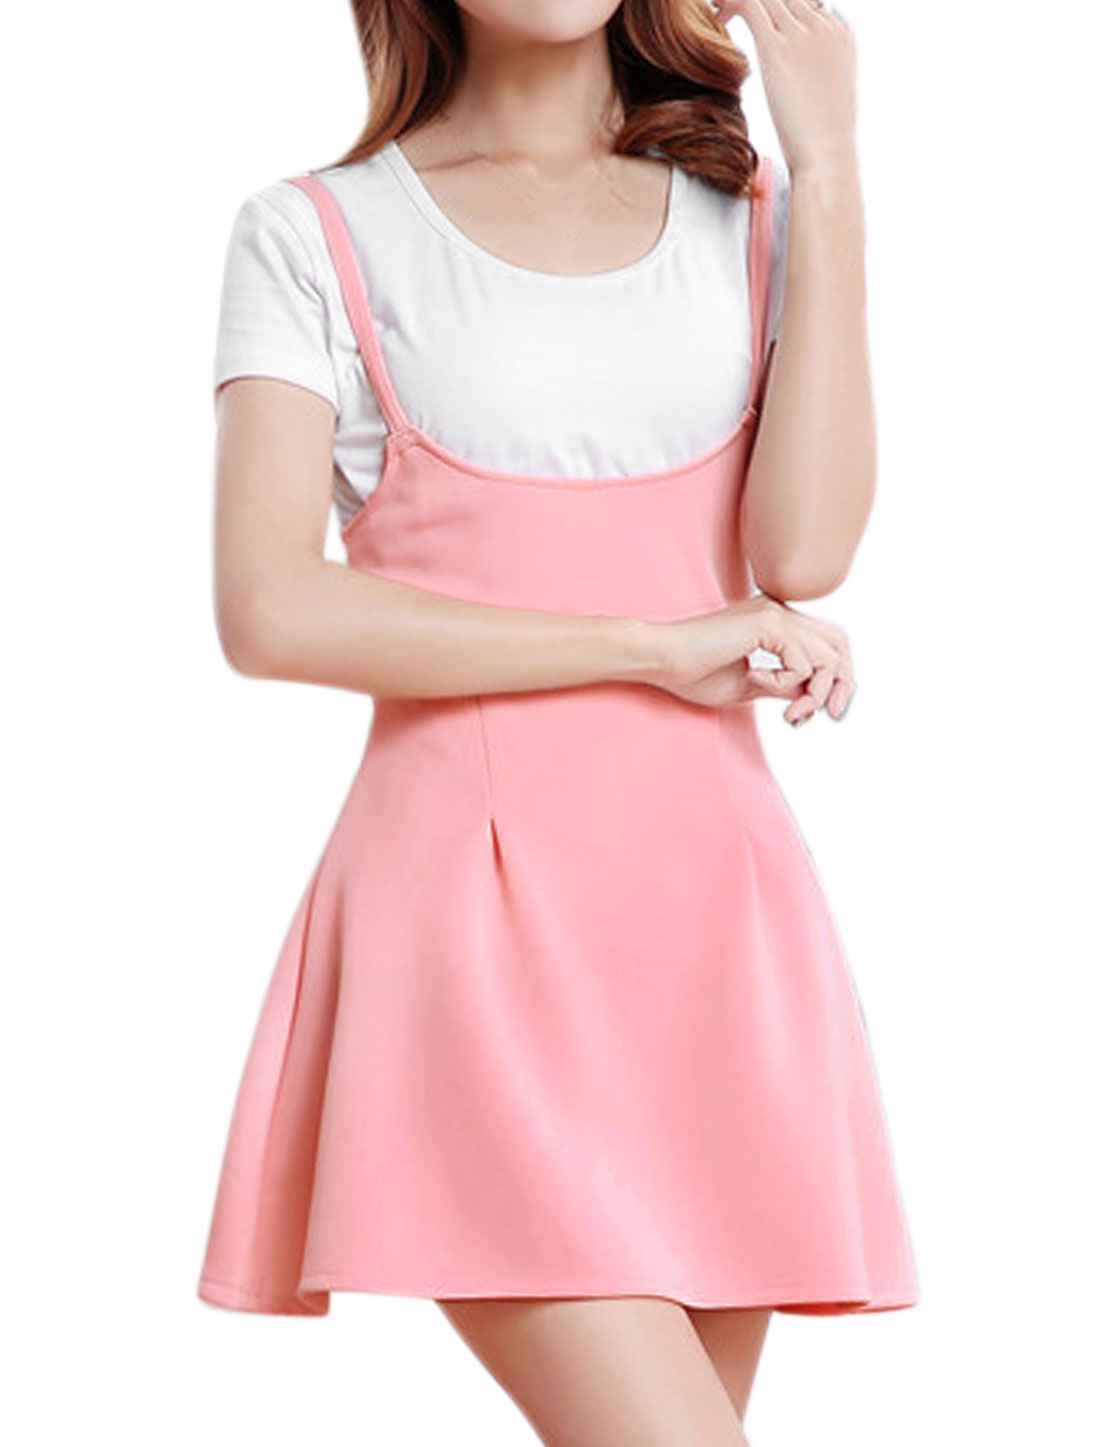 Women High Waist Fit and Flare Mini Suspender Dress Pink XS